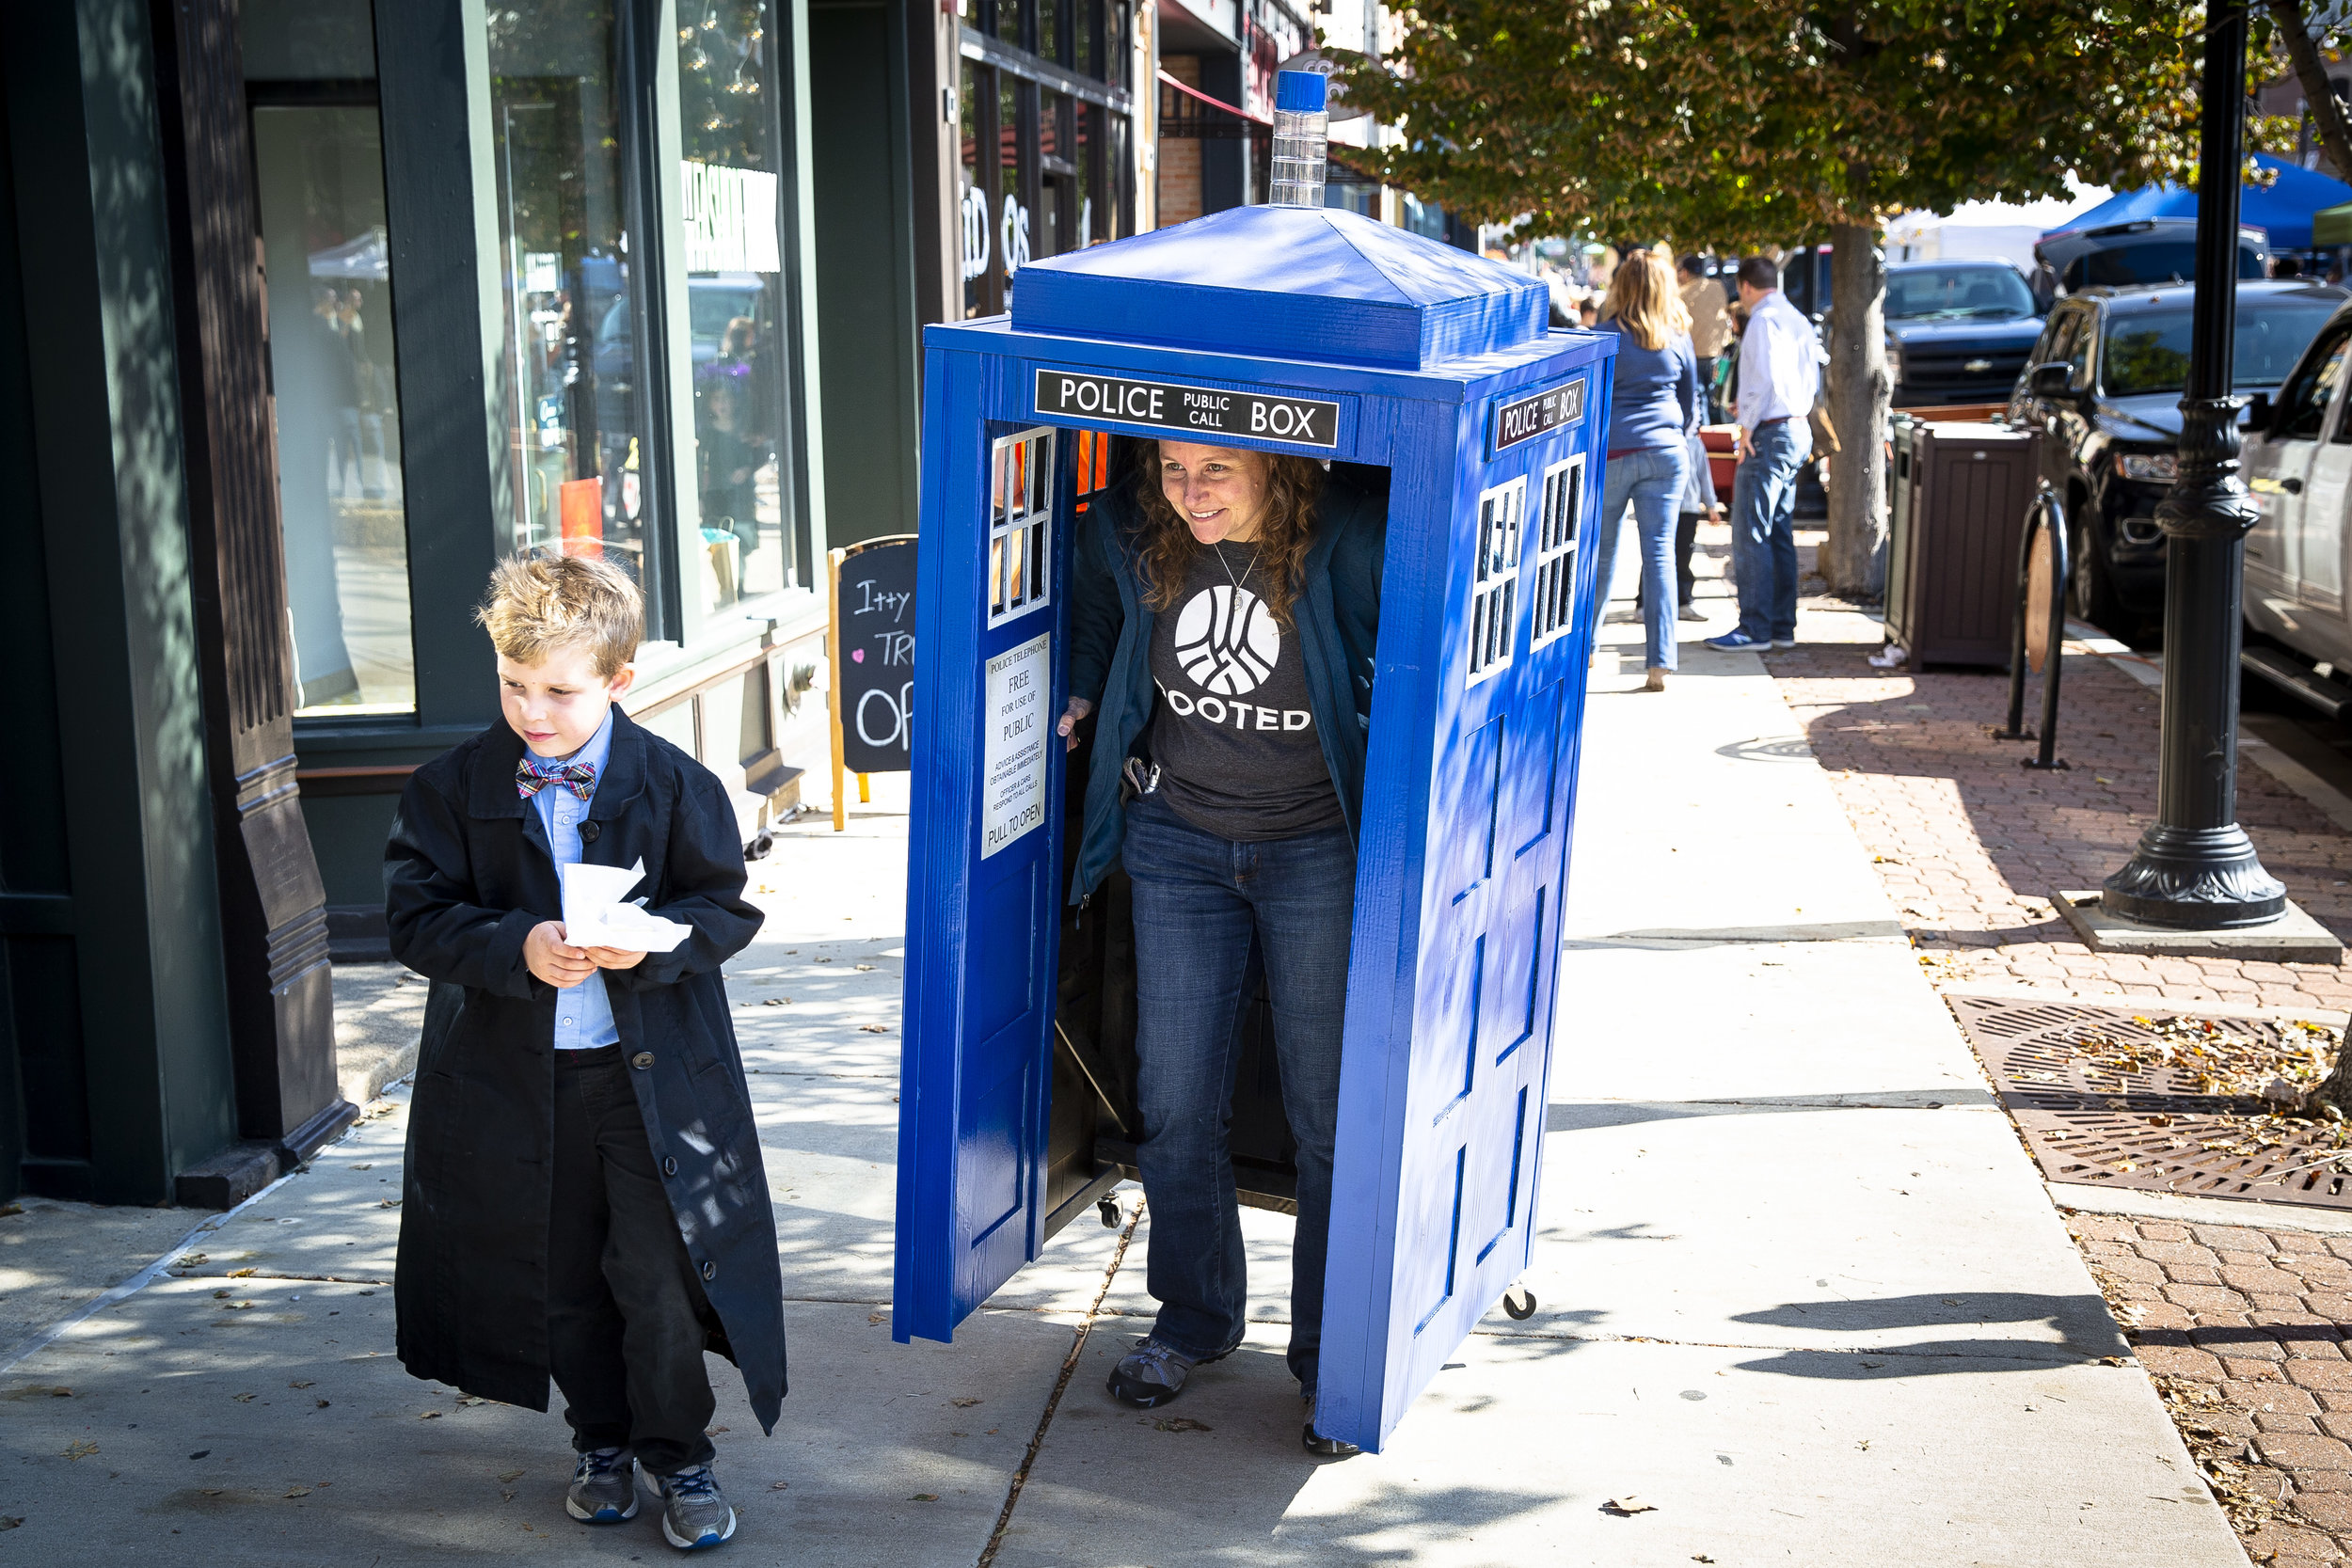 Jennifer Lair wears a police call box that she built for the family costume contest that she entered with her son, Logan, 6, during the Halloween at the Market Saturday, Oct. 27, 2018 at the Old Capitol Farmer's Market in Springfield, Ill. [Rich Saal/The State Journal-Register]